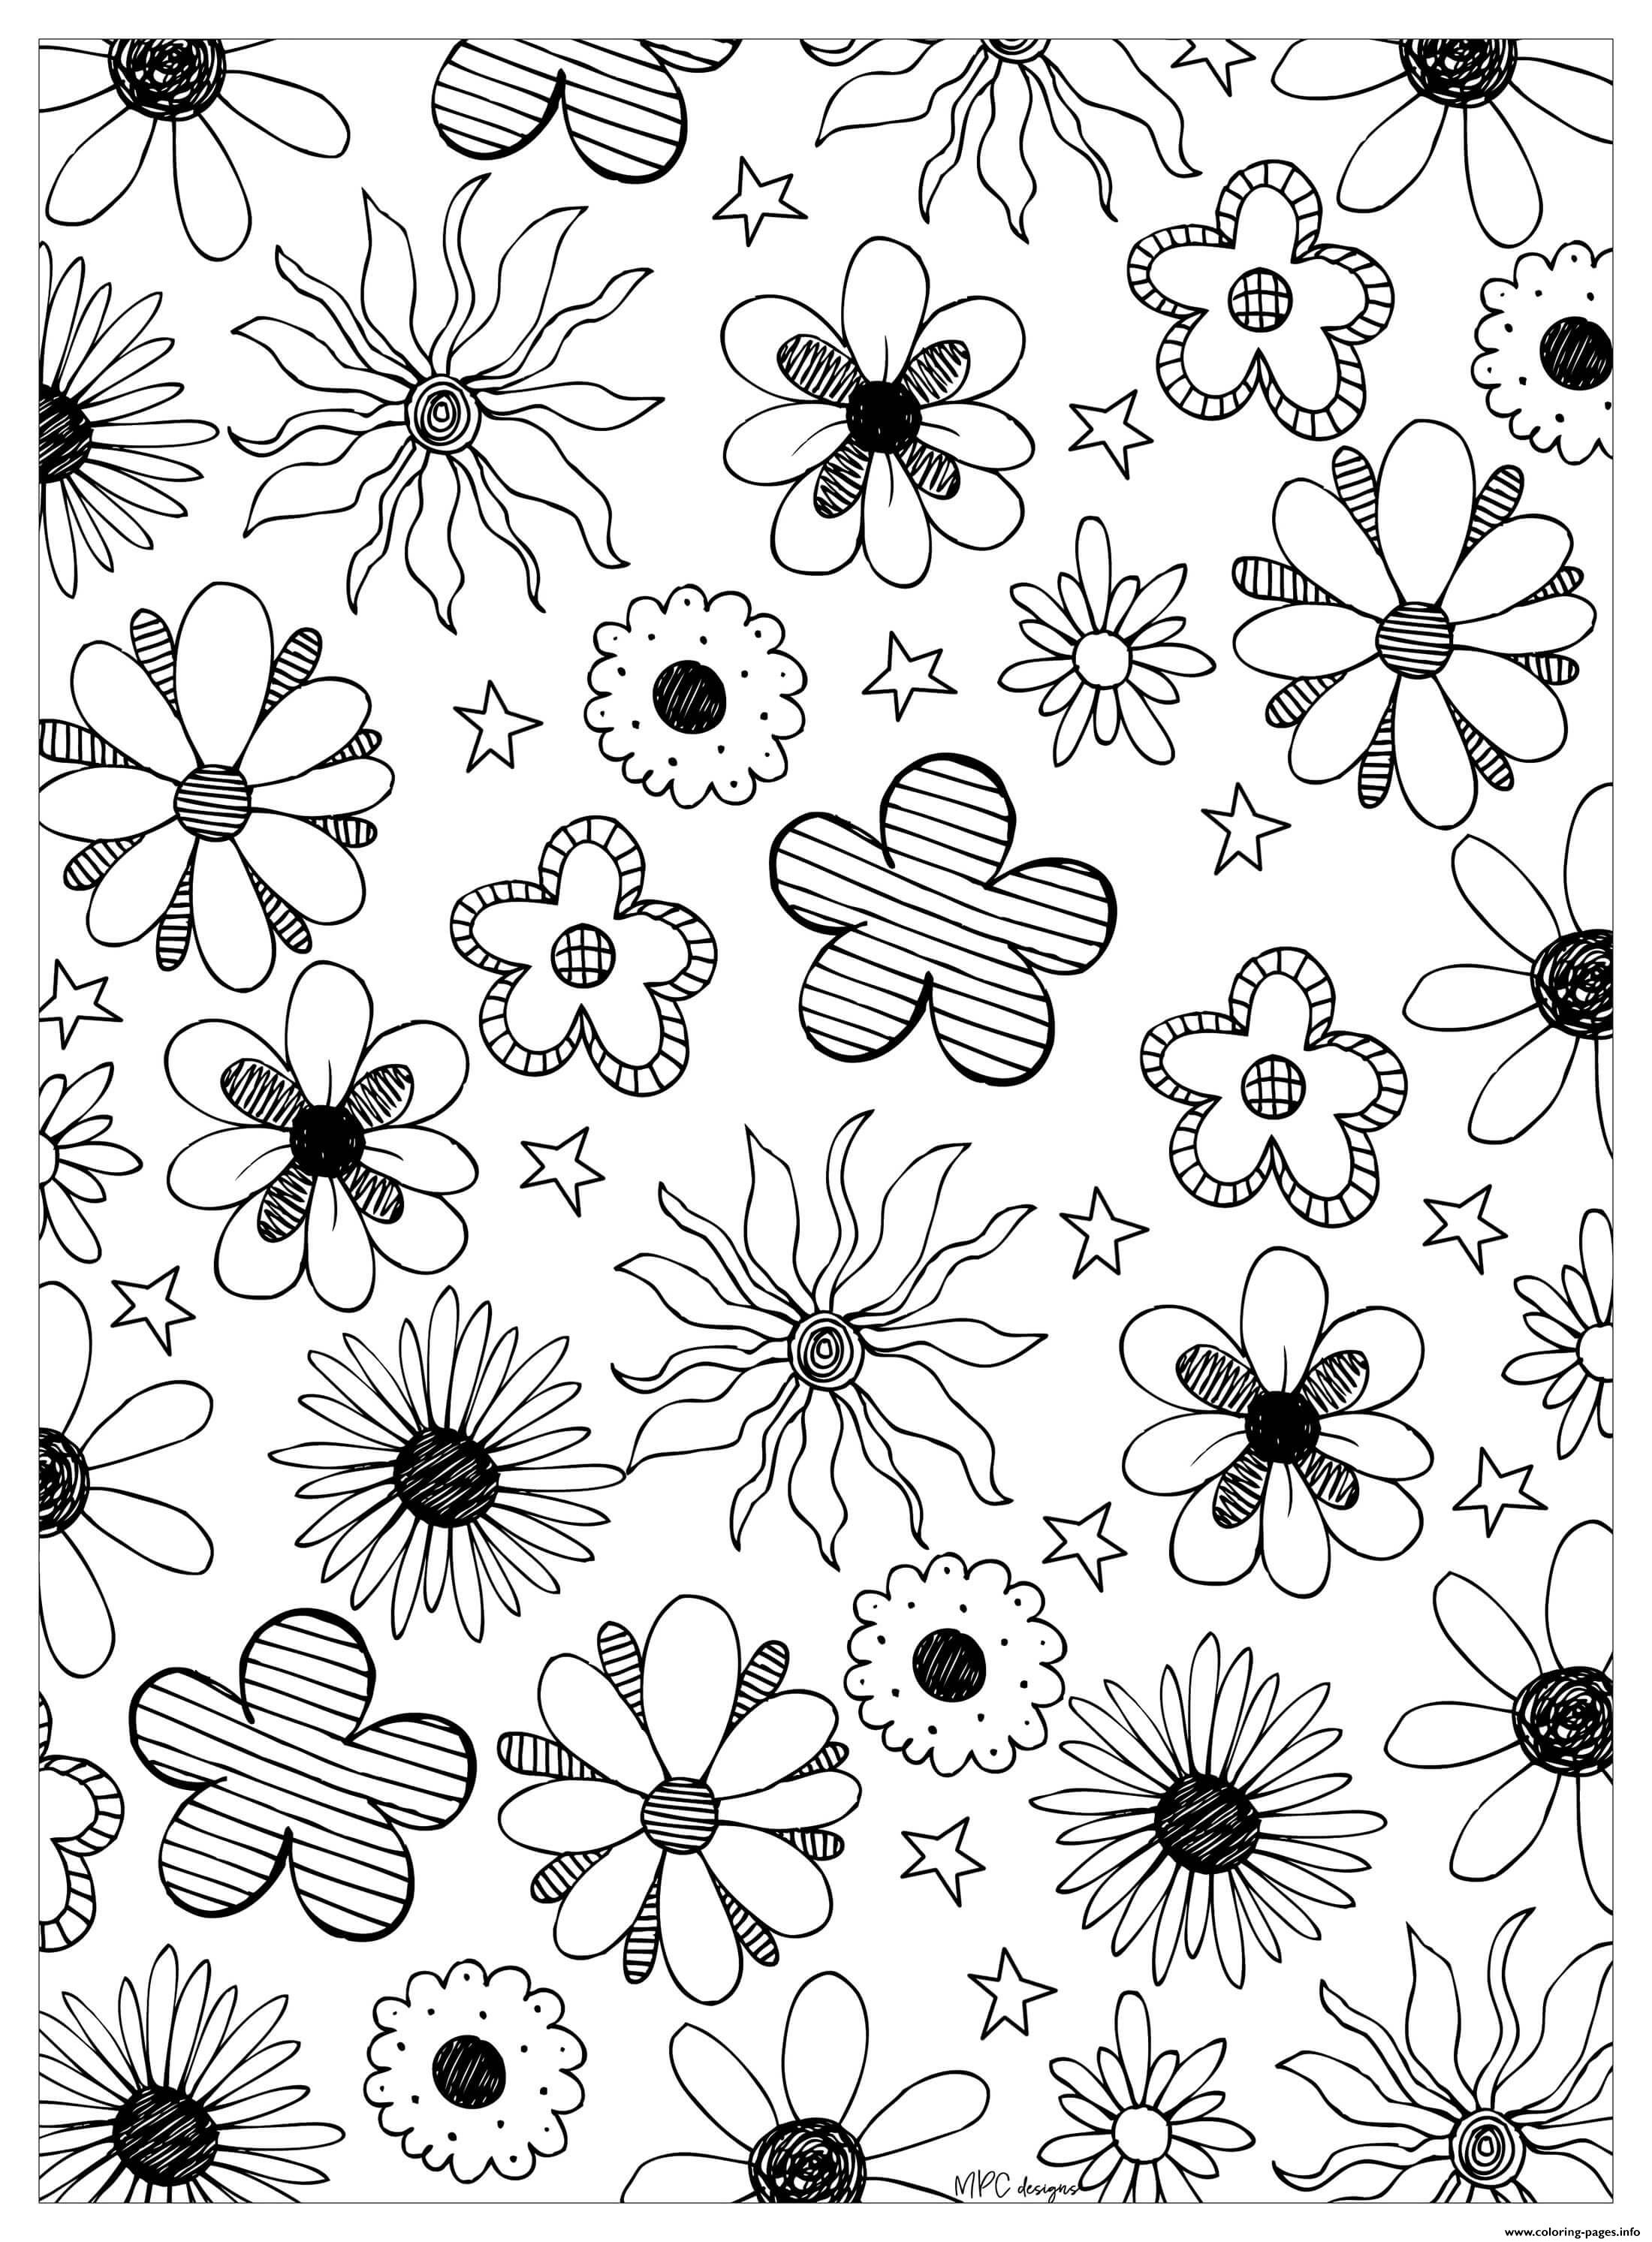 Flowers Adult By Mpc Design Coloring Pages Printable